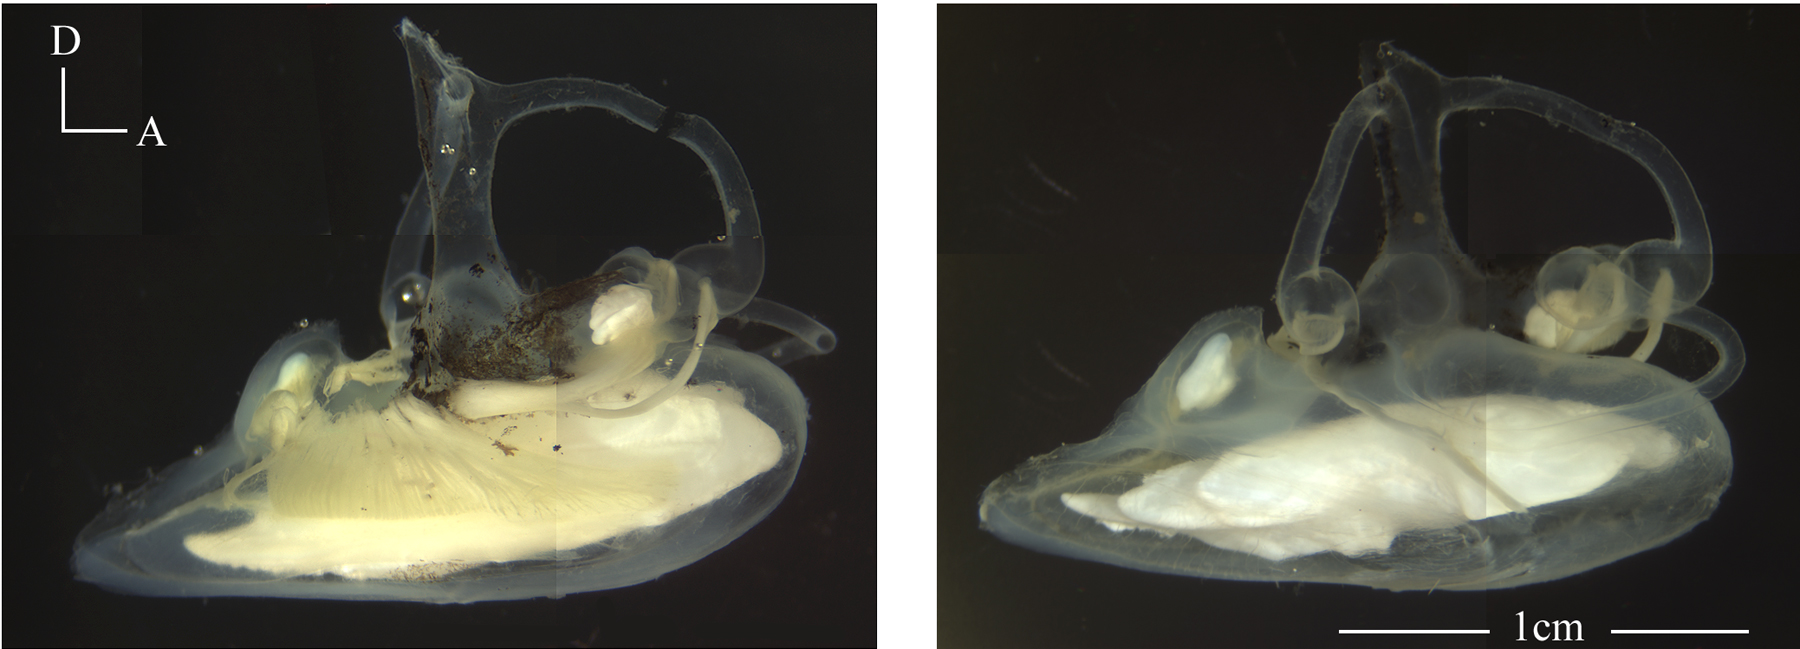 These are pictures of the left and right ears of the blue antimora (Antimora rostrata), a deep-sea cod. In the picture of the right ear (on the right), you can clearly see the three otolith organs as white objects. The saccular otolith in this species is very large and heavy. Copyright Xiaohong Deng, Neuroscience and Cognitive Science Program, University of Maryland. http://www.life.umd.edu/biology/popperlab/research/deepsea.htm.